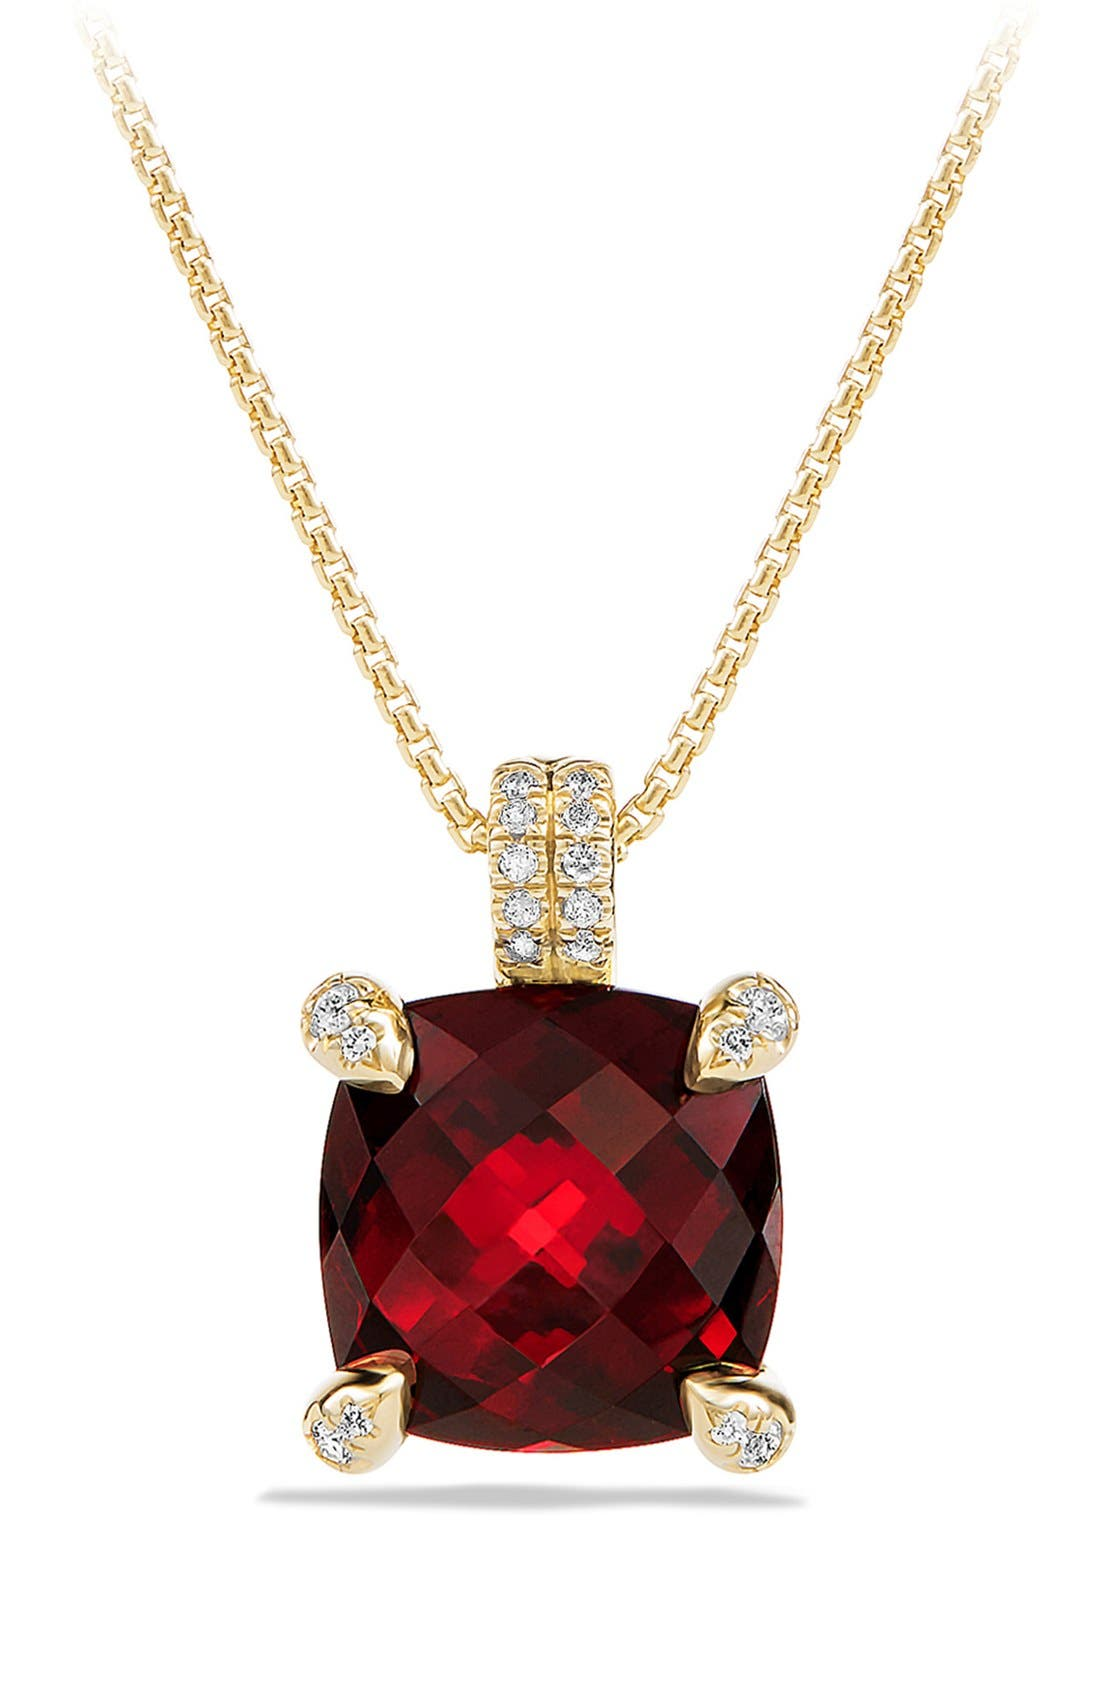 David Yurman 'Châtelaine' Pendant Necklace with Diamonds